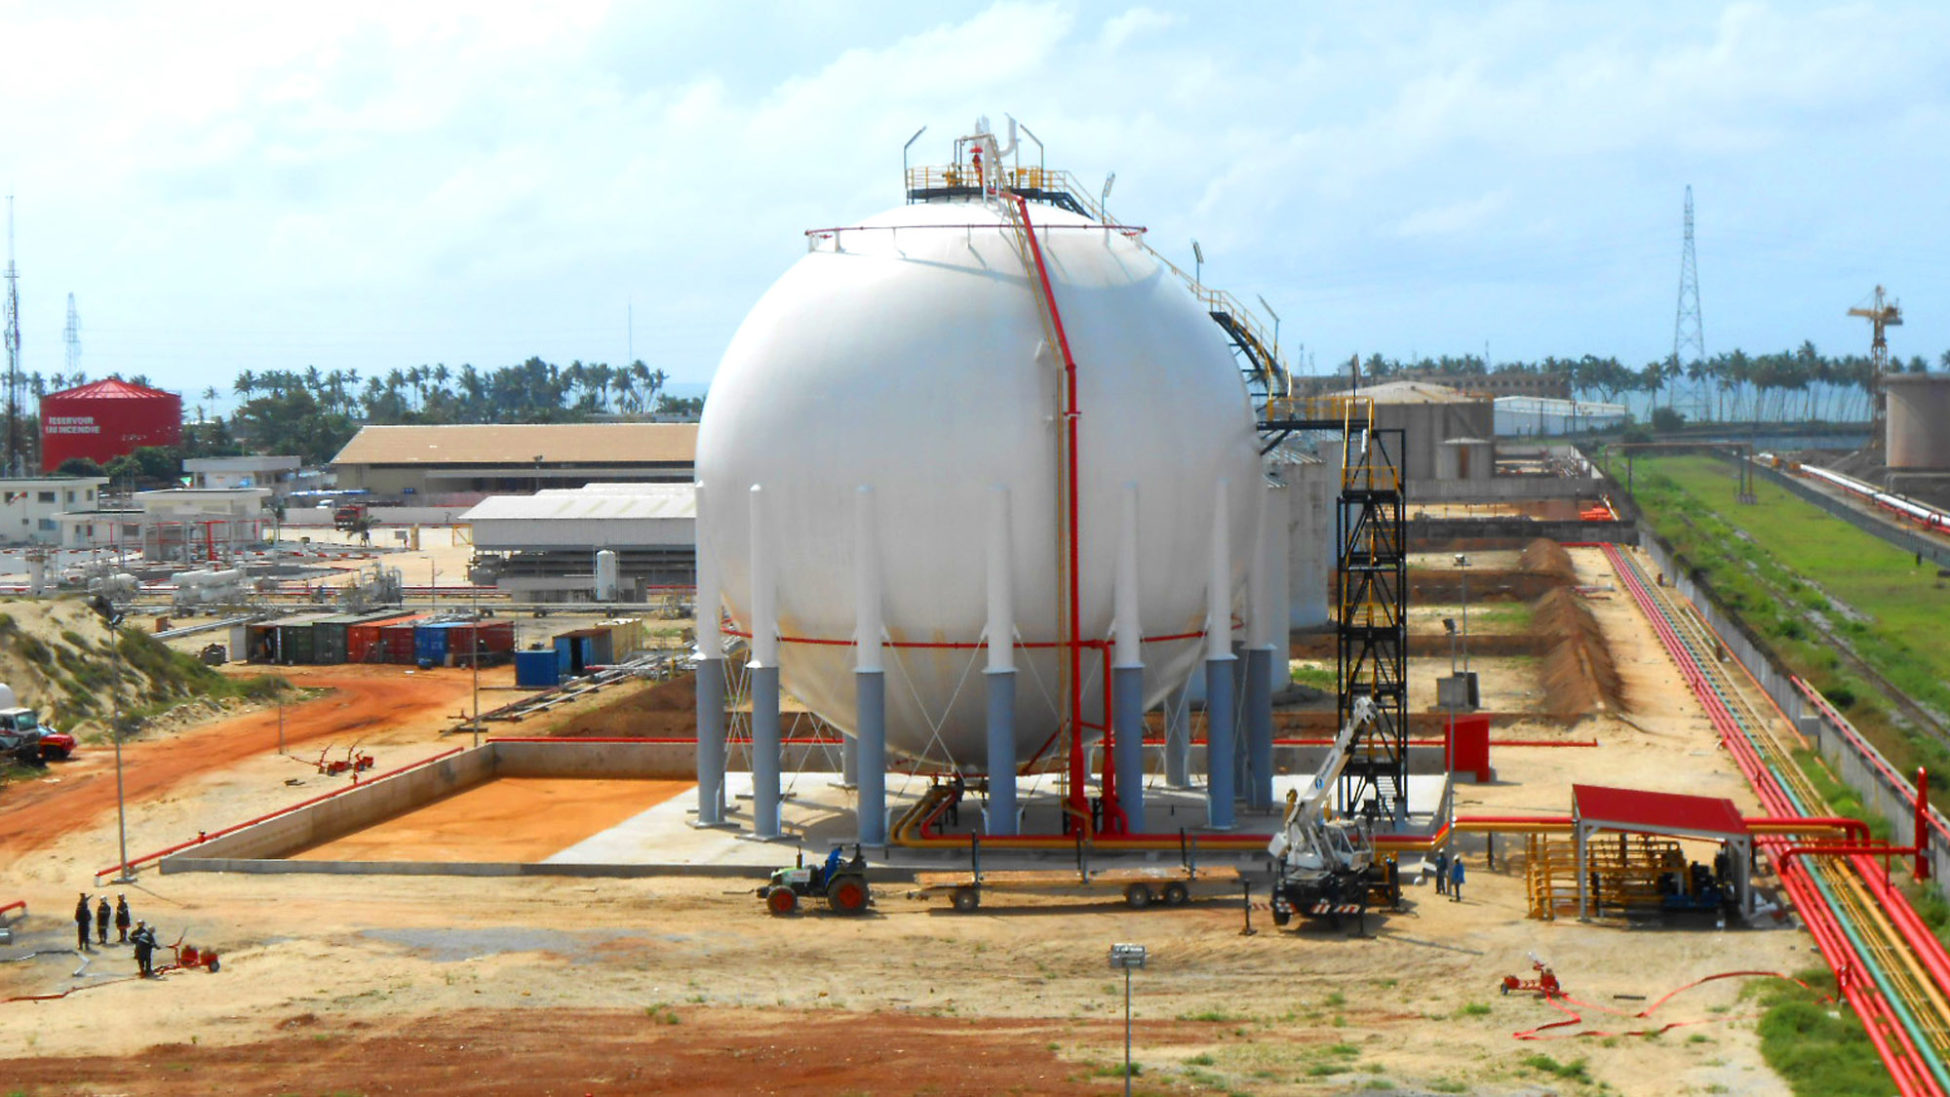 Friedlander sets up an 8,000 m3 LPG storage sphere